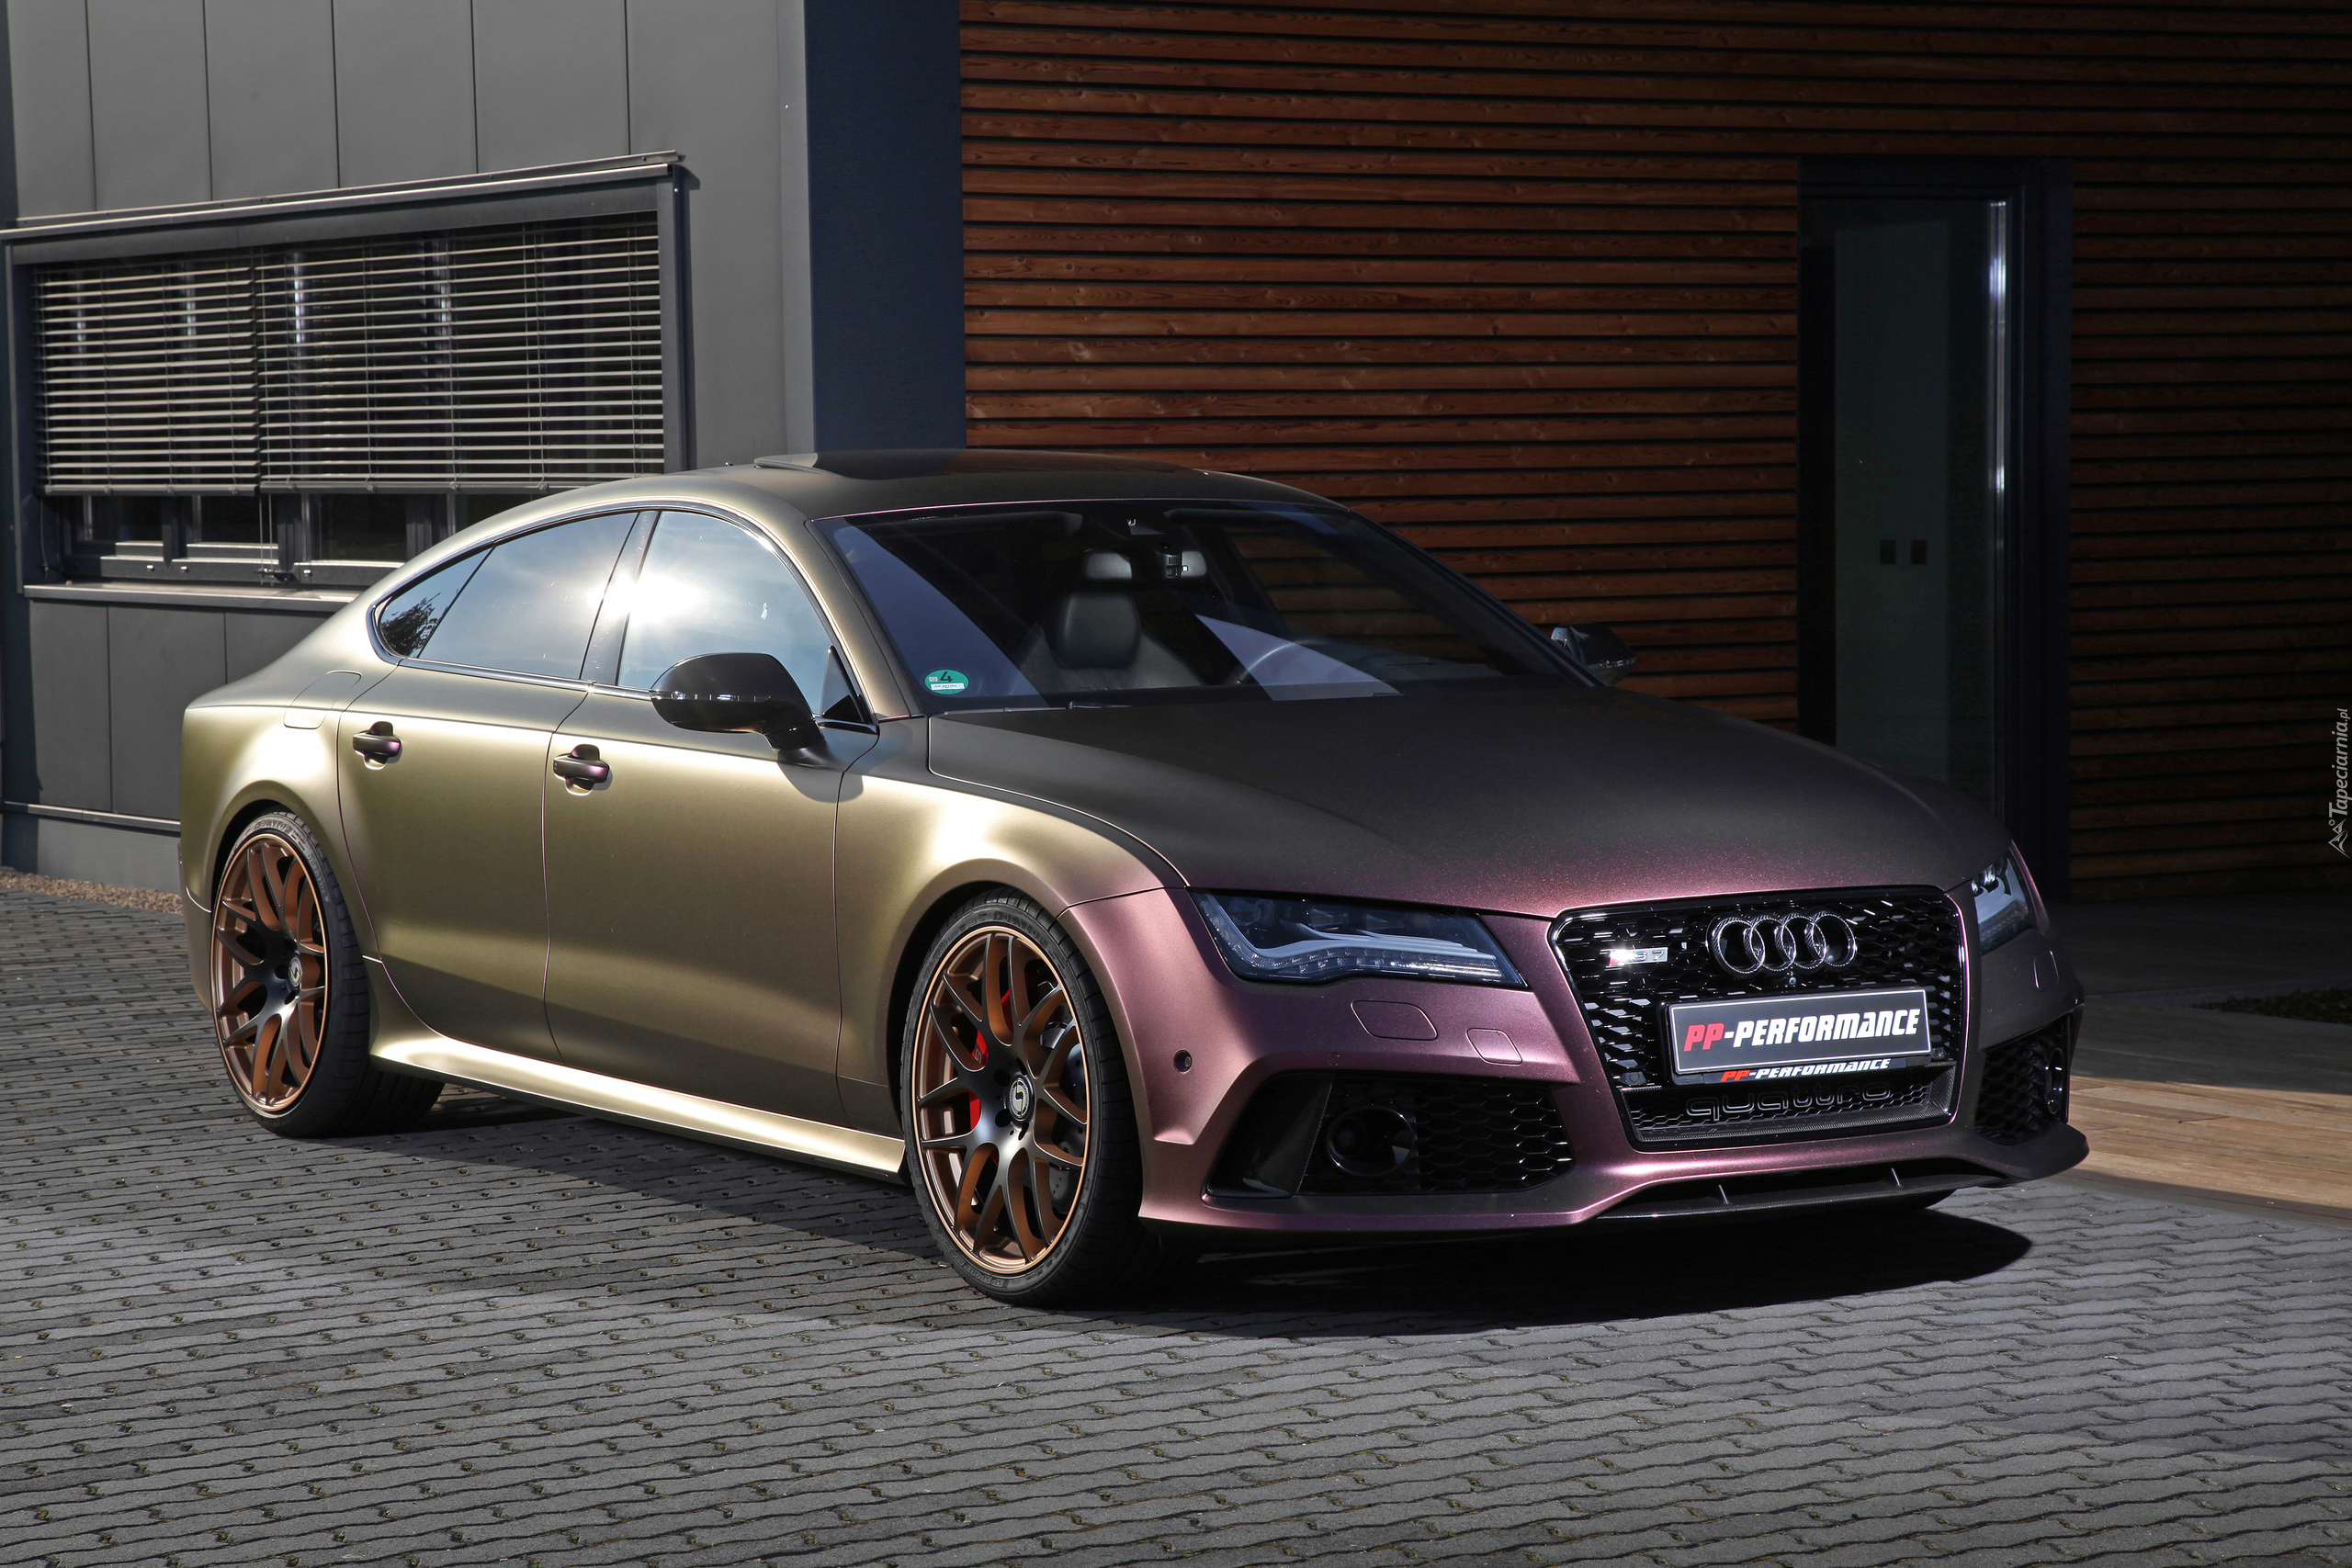 Audi A7 RS7 PP-Performance, 2016